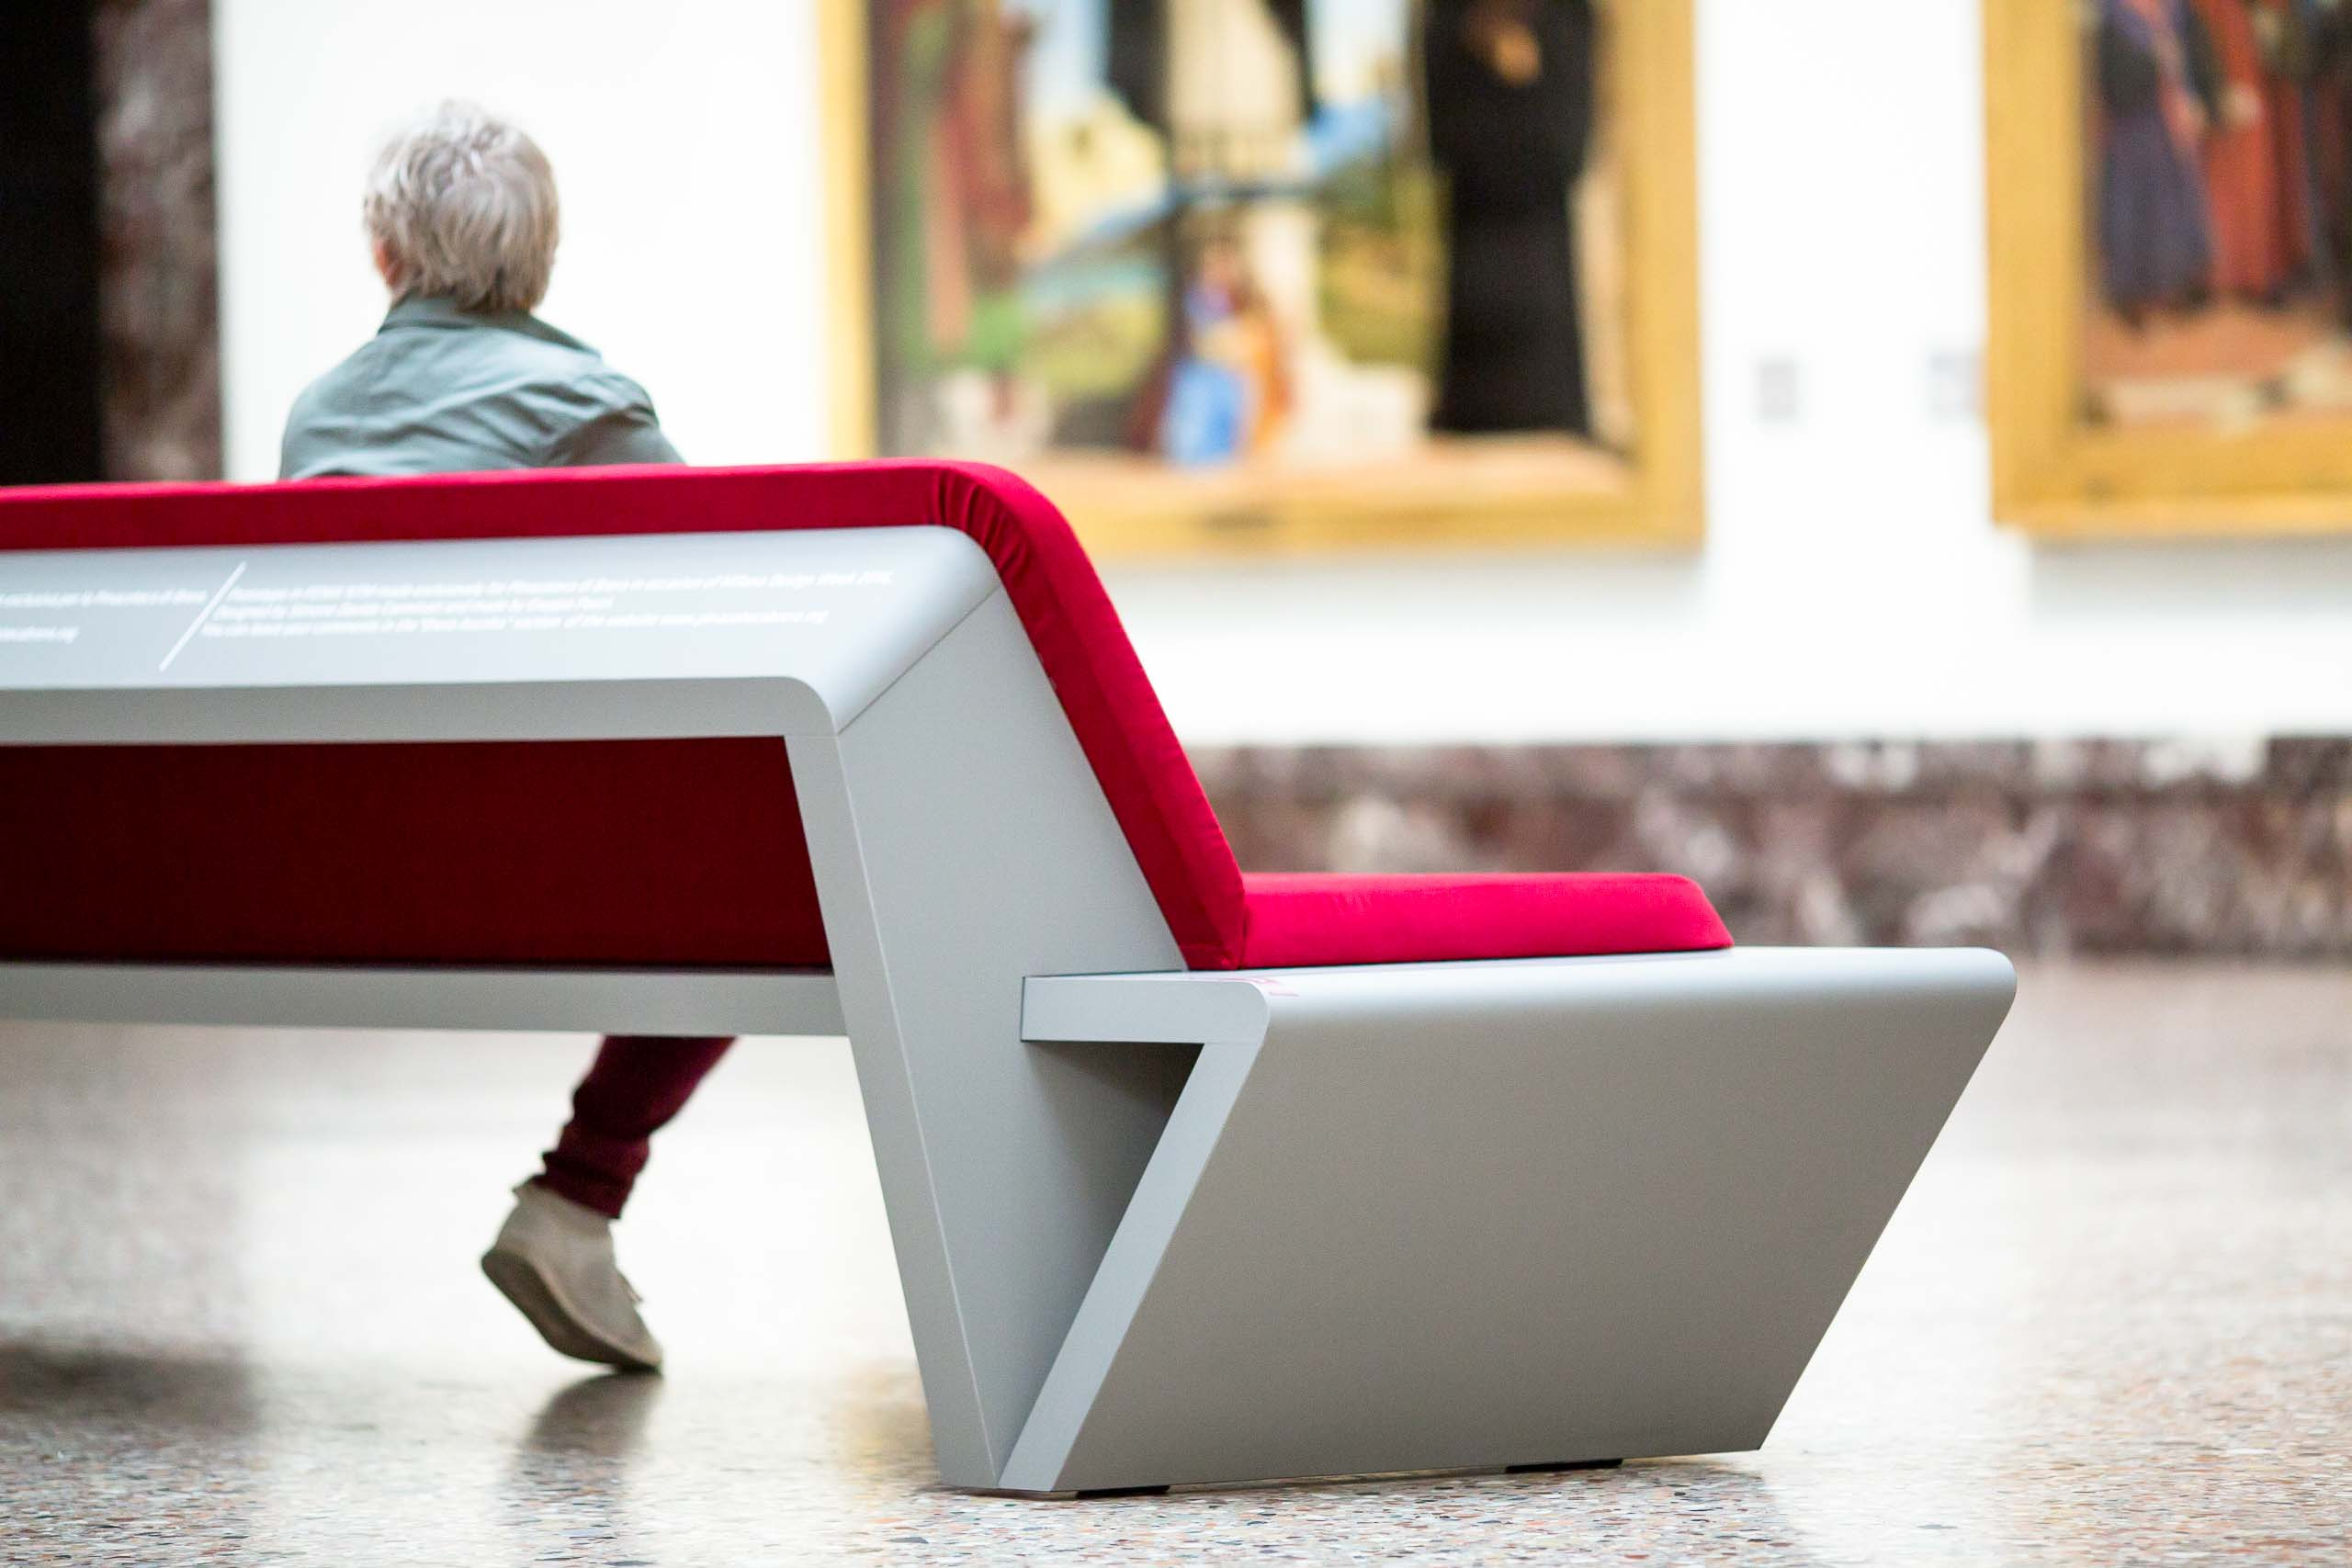 THE NEW BENCH FOR THE PINACOTECA DI BRERA